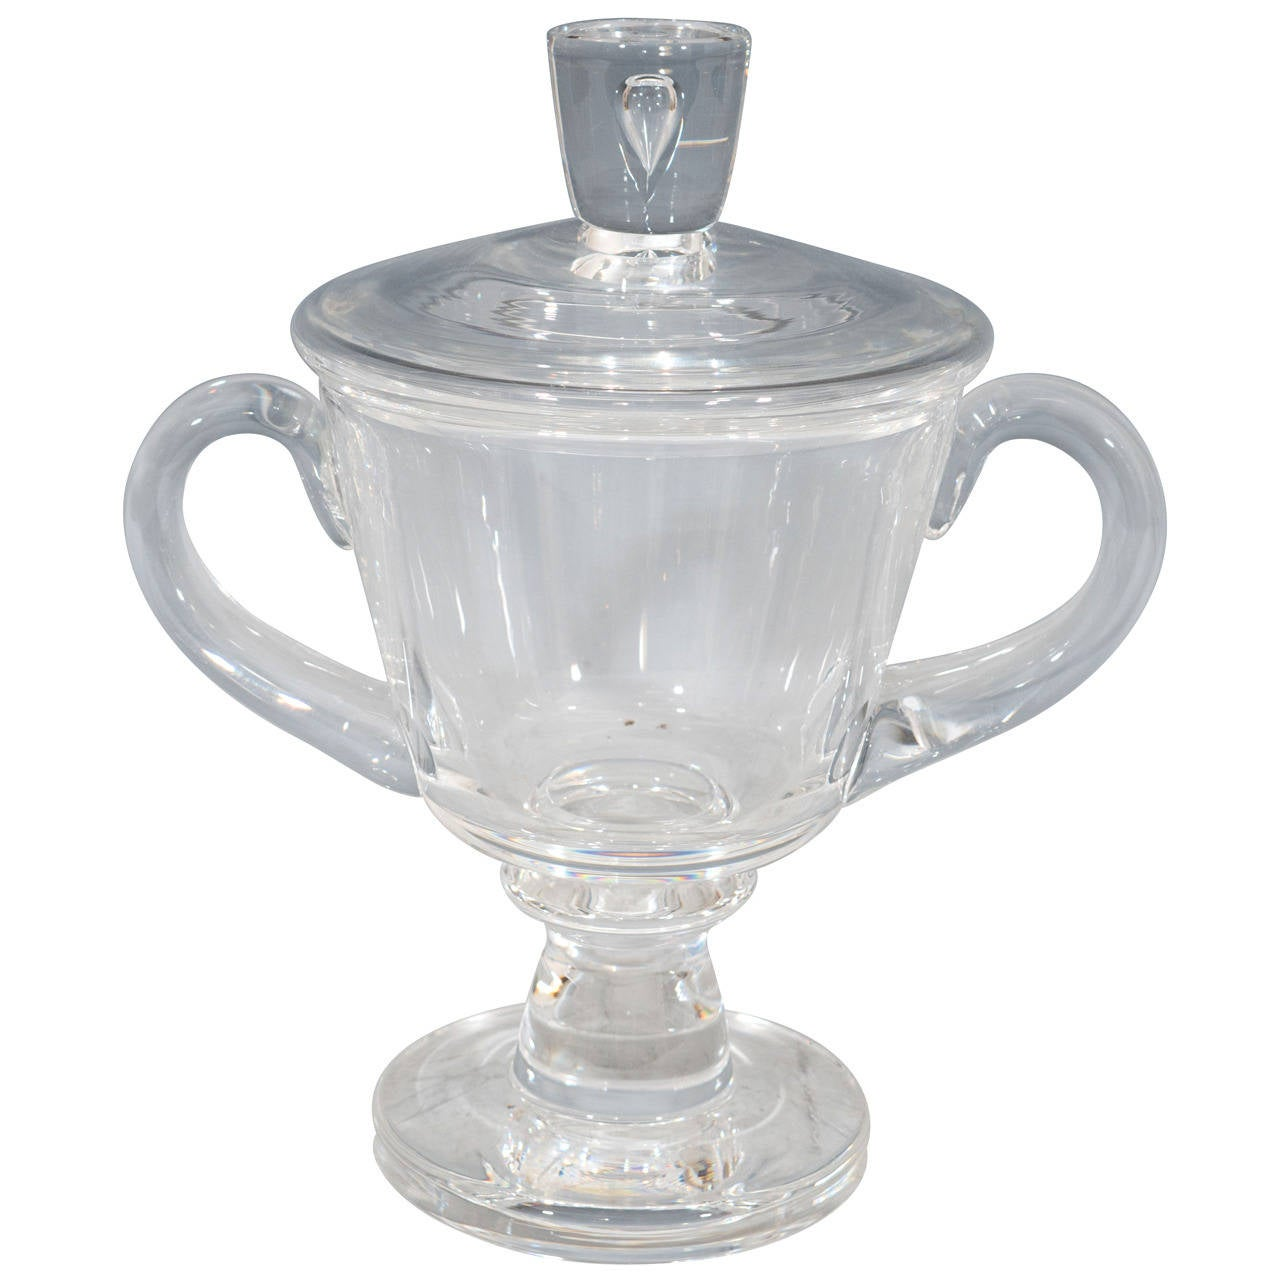 1930s Steuben Signed Glass Covered Candy Dish or Urn